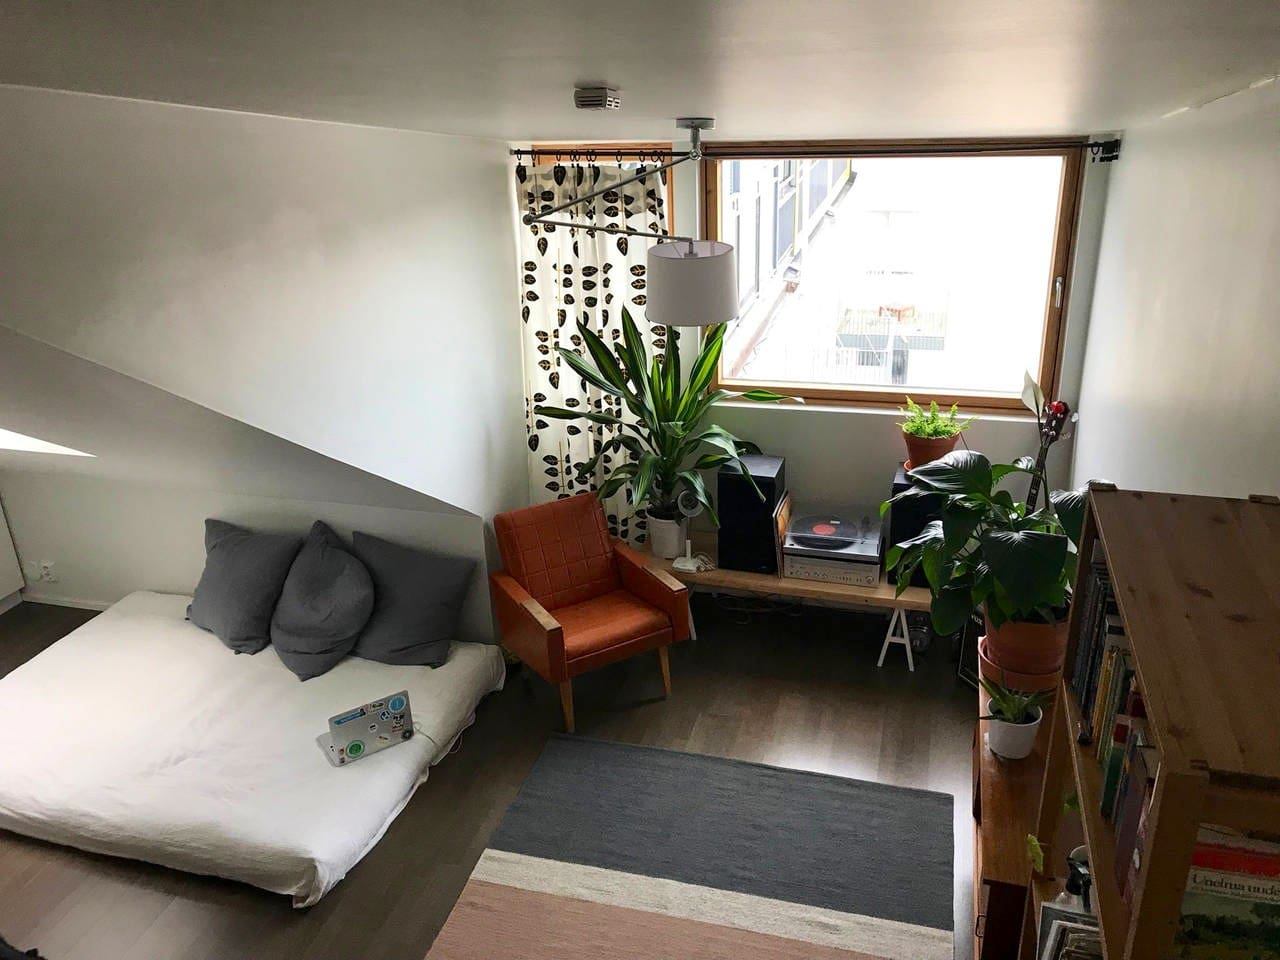 The main living space, with a new and comfortable futon bed, record player and bookshelf.